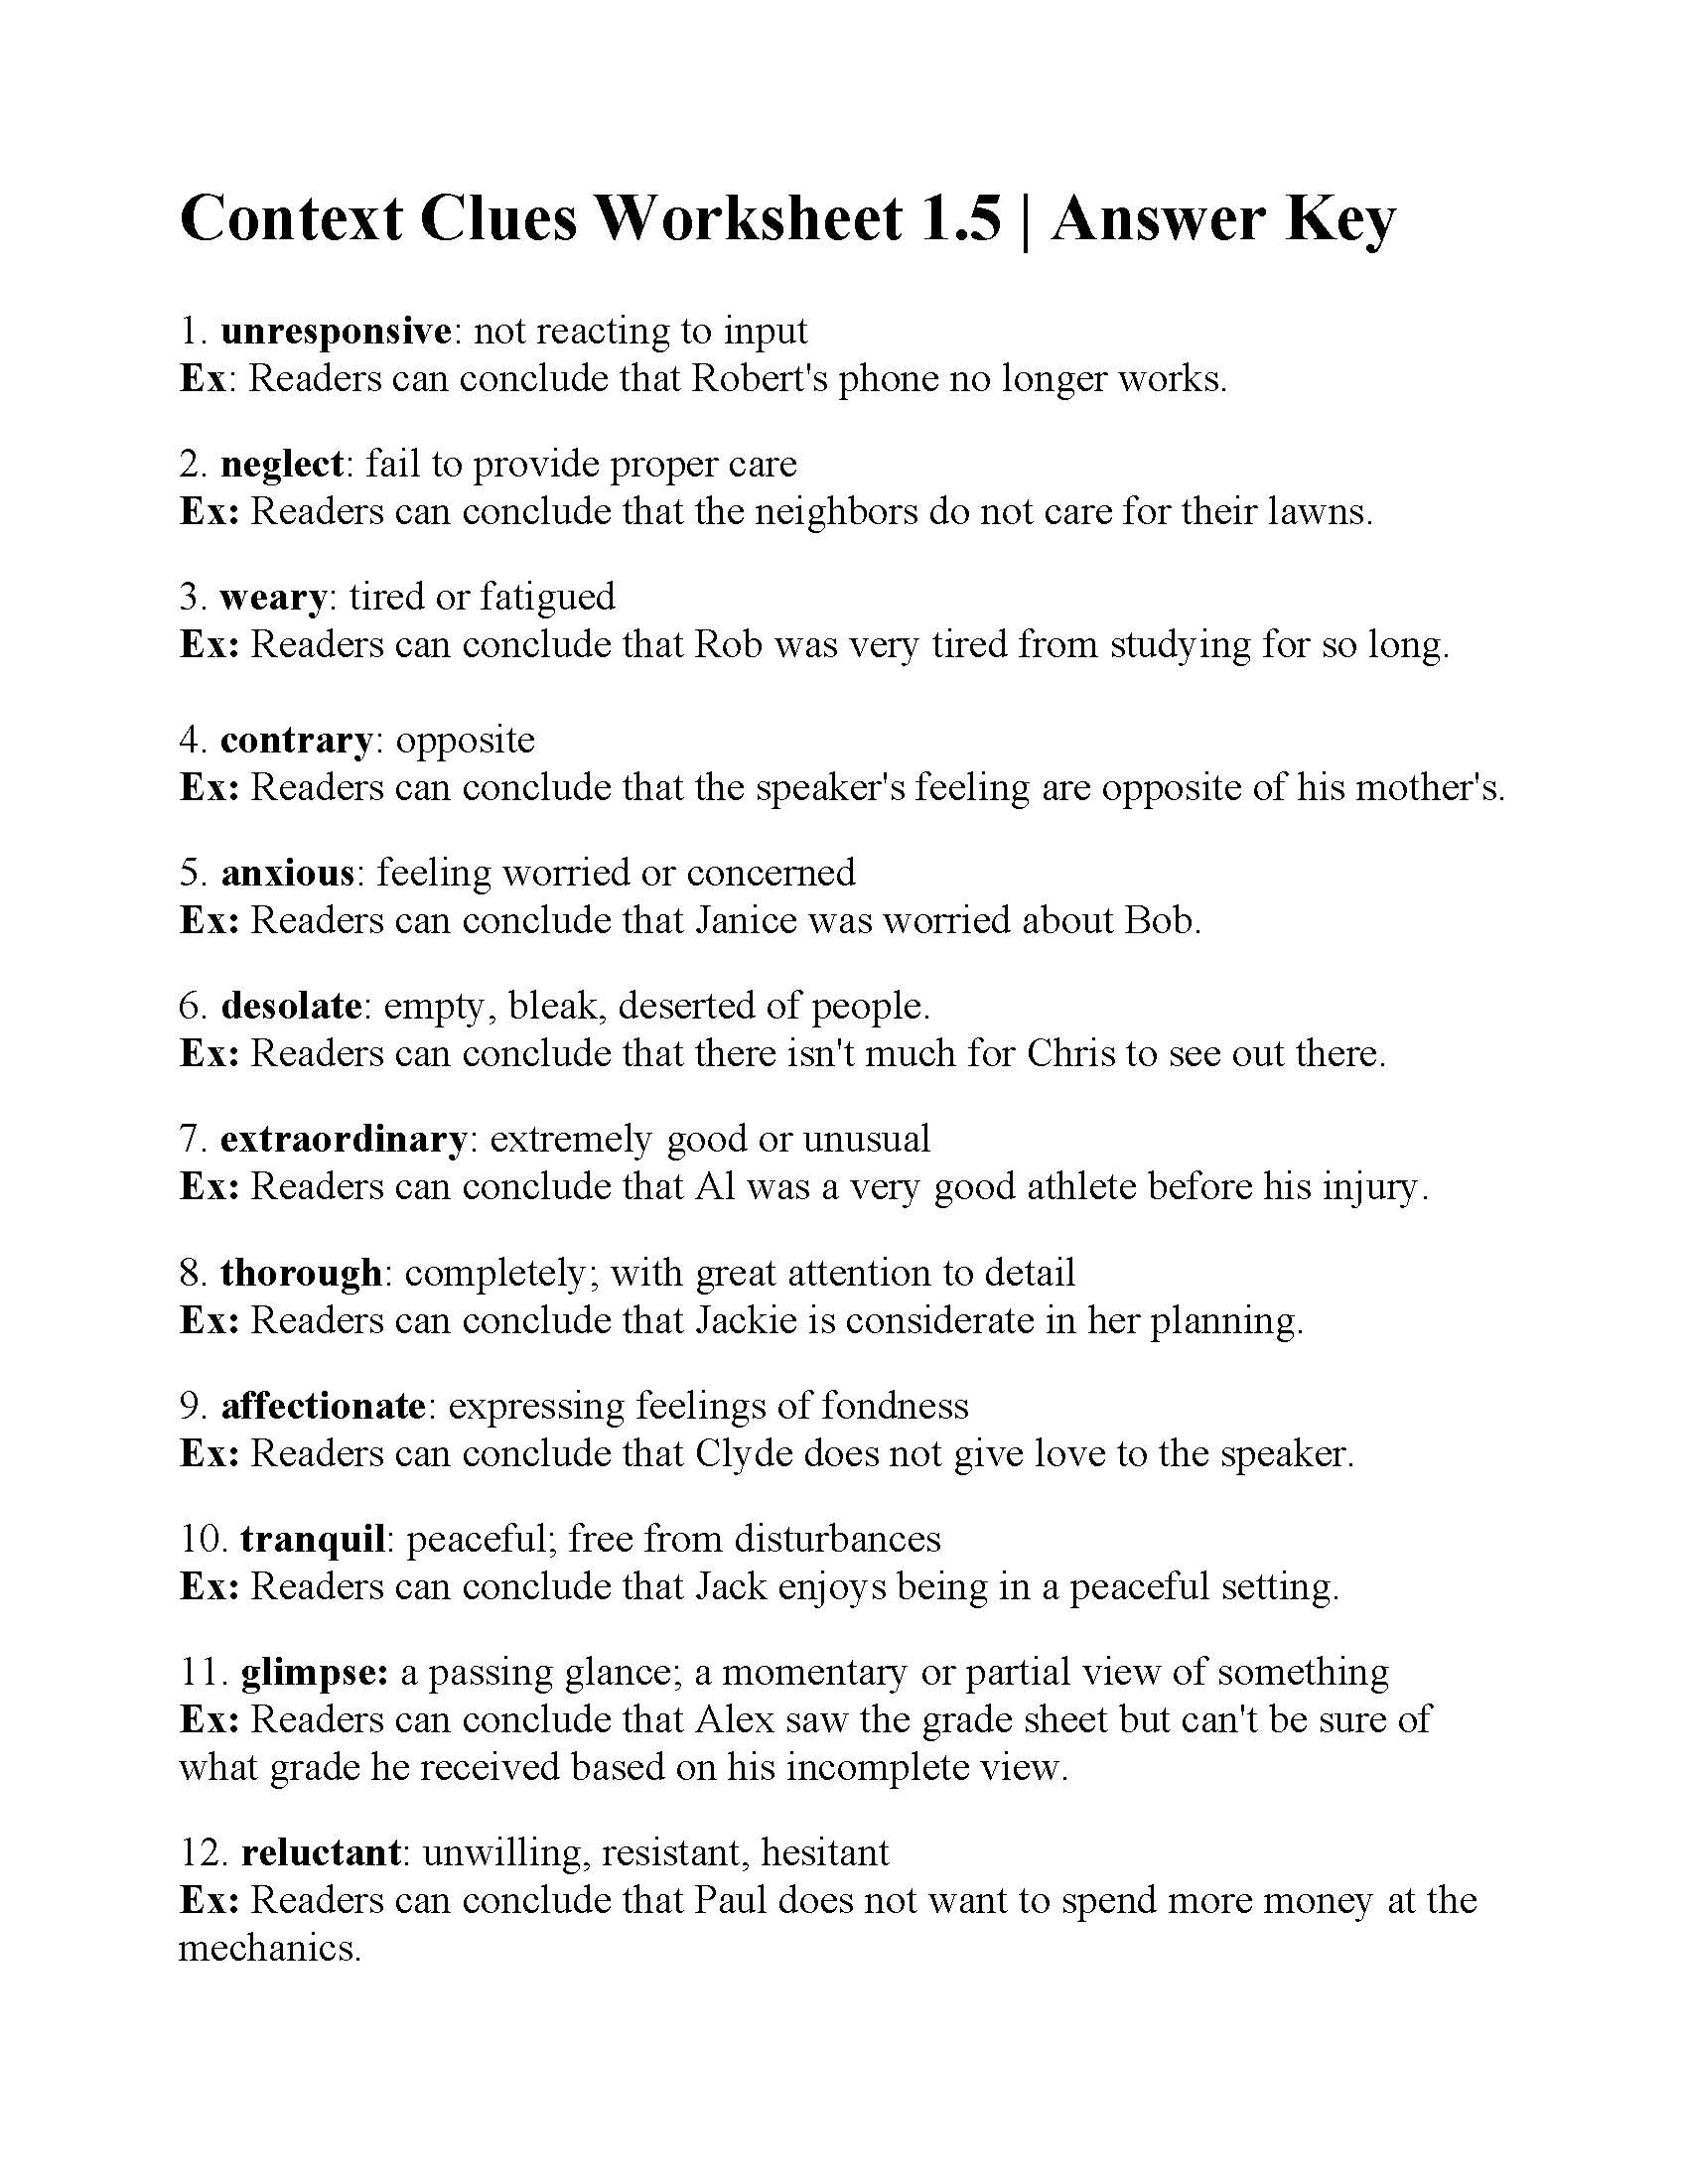 Free Printable 5th Grade Context Clues Worksheets